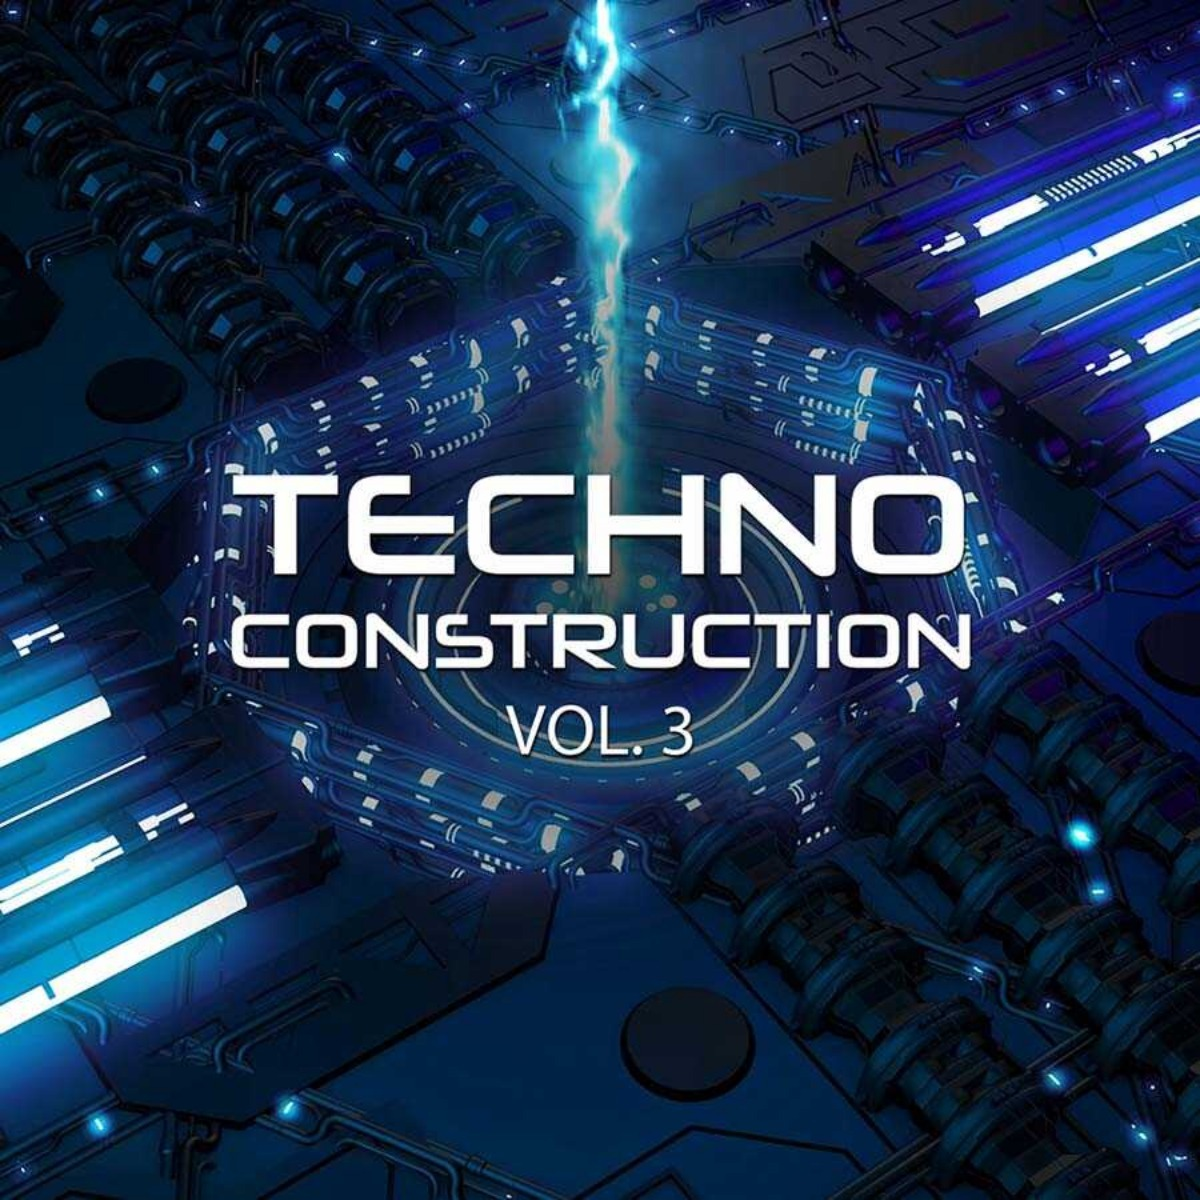 Techno Construction Vol 3